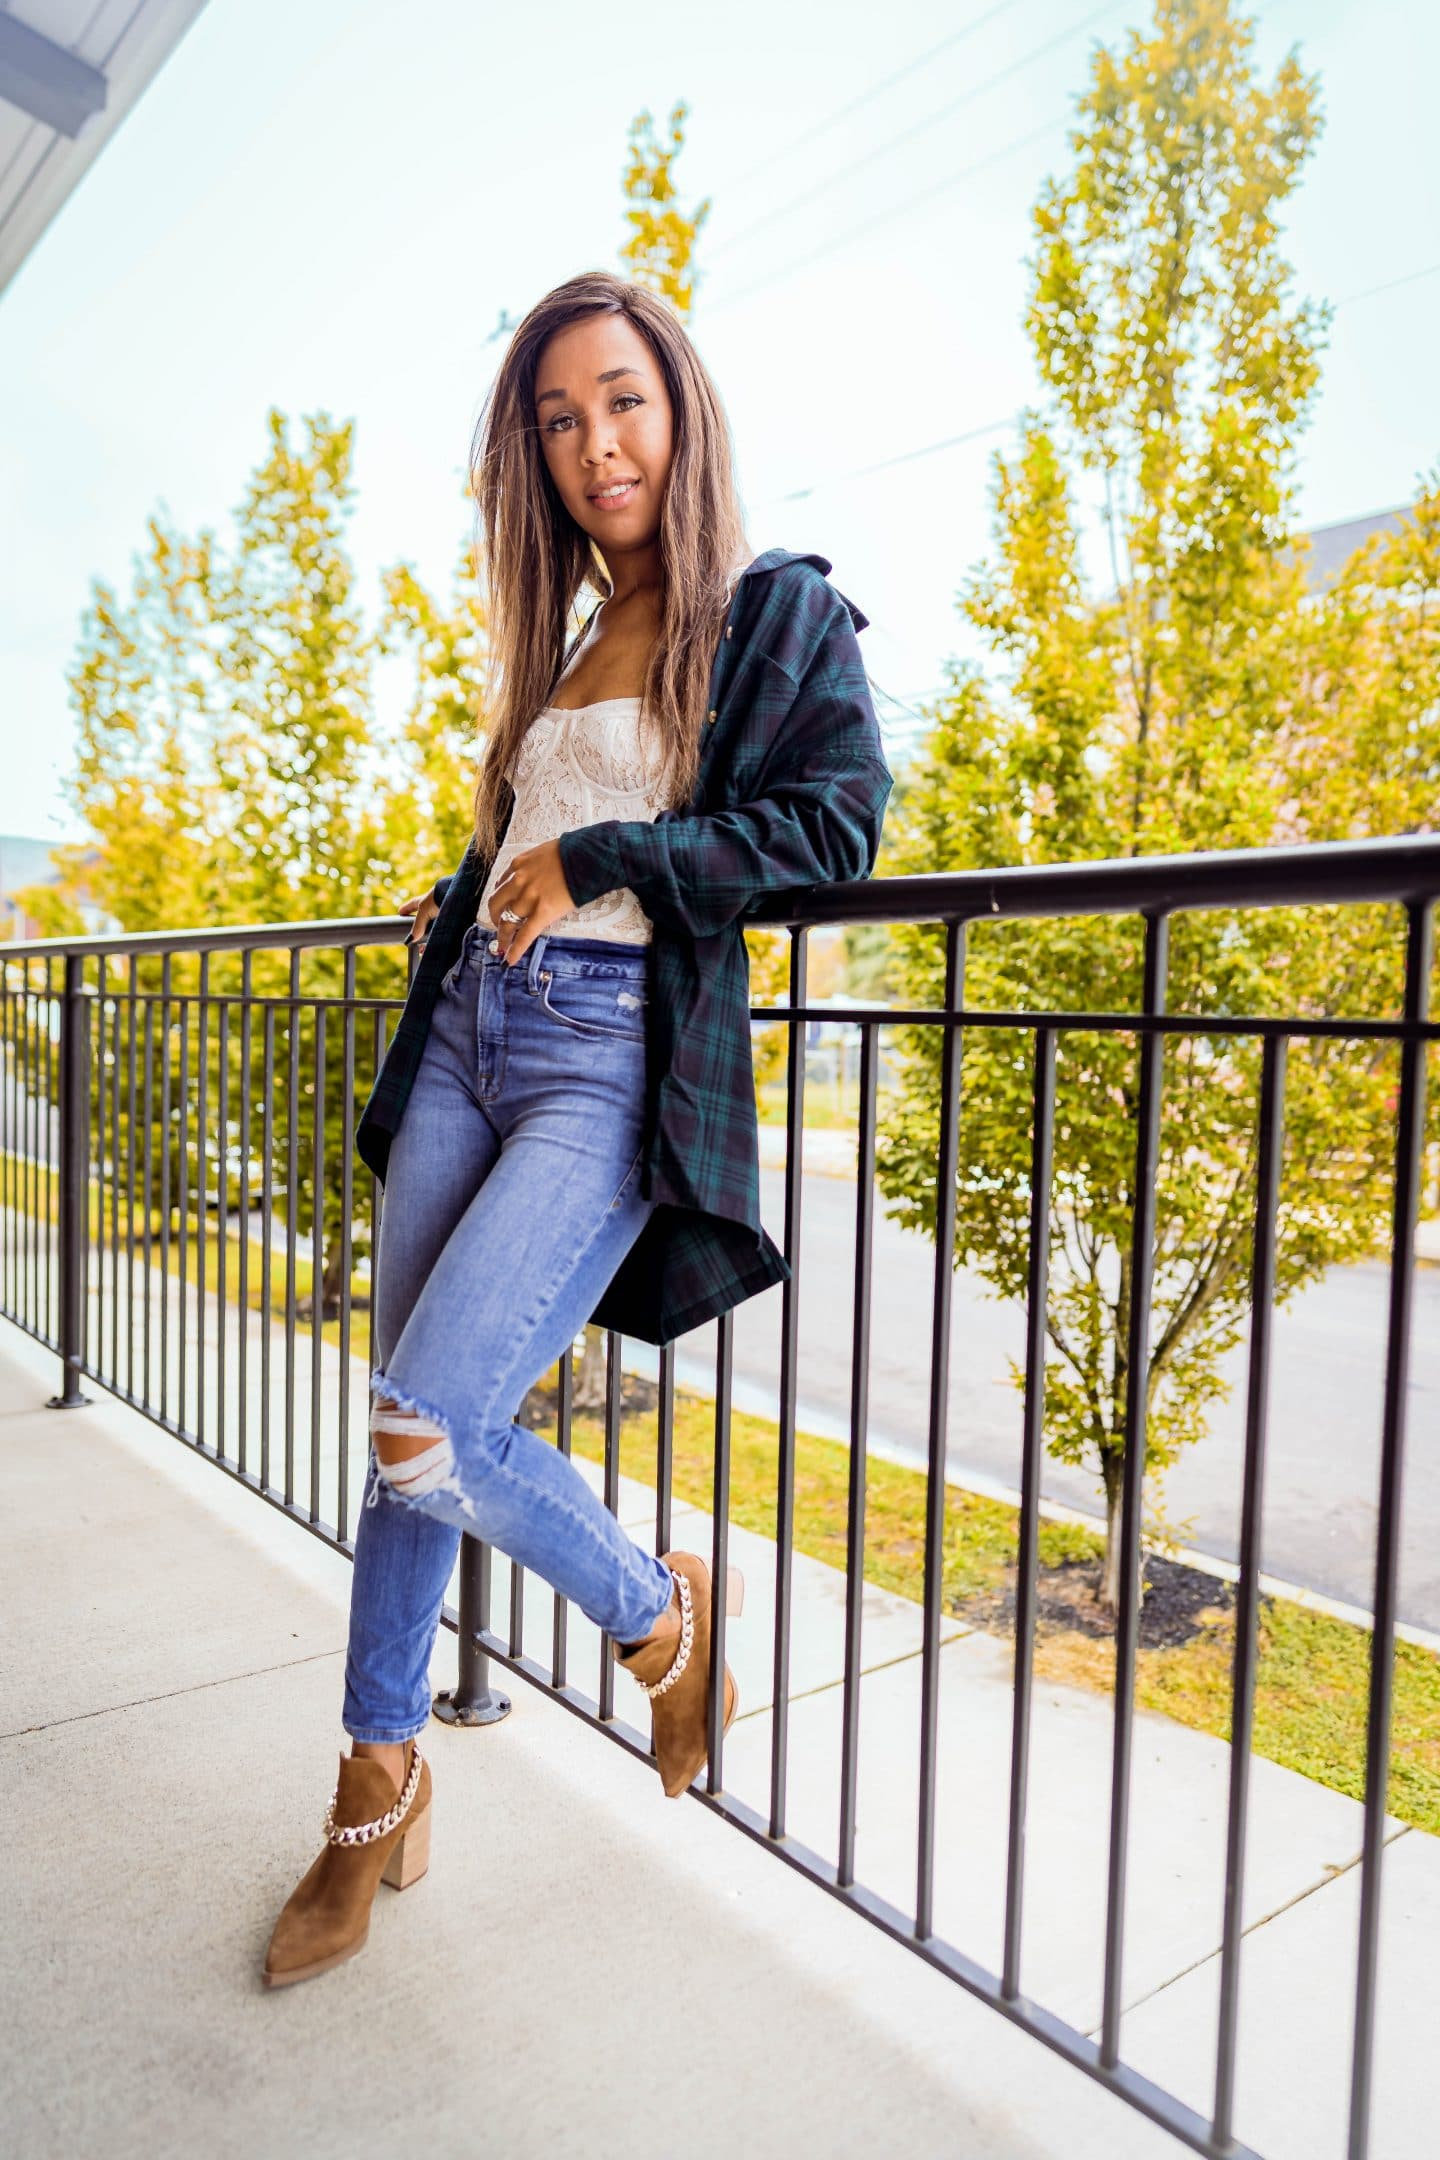 livinglesh tips for styling an oversized flannel top